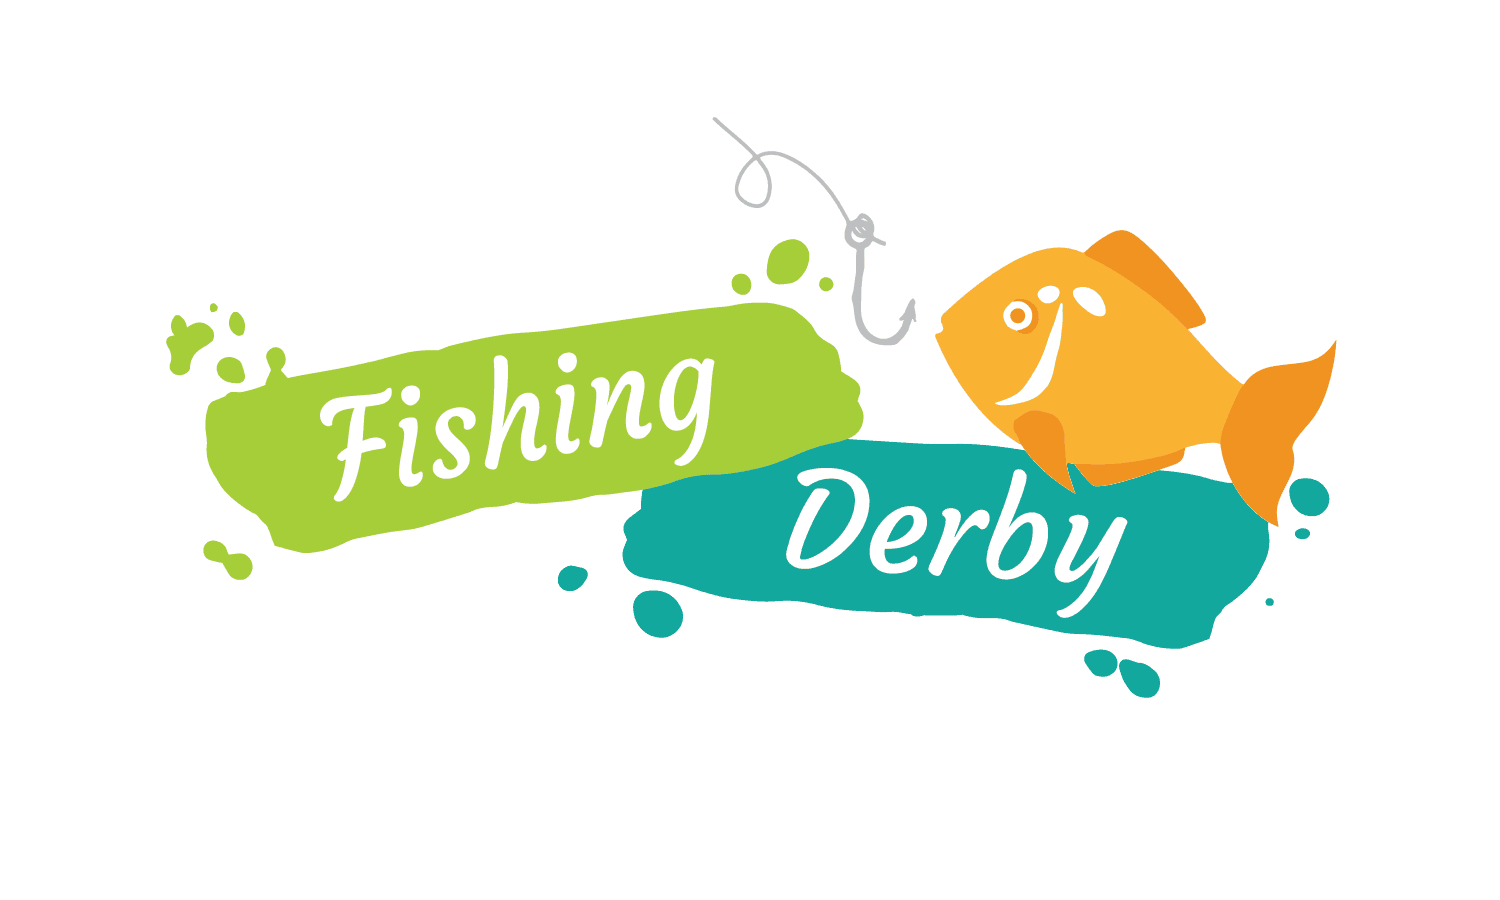 Summer_Camp_Logos_FishingDerby